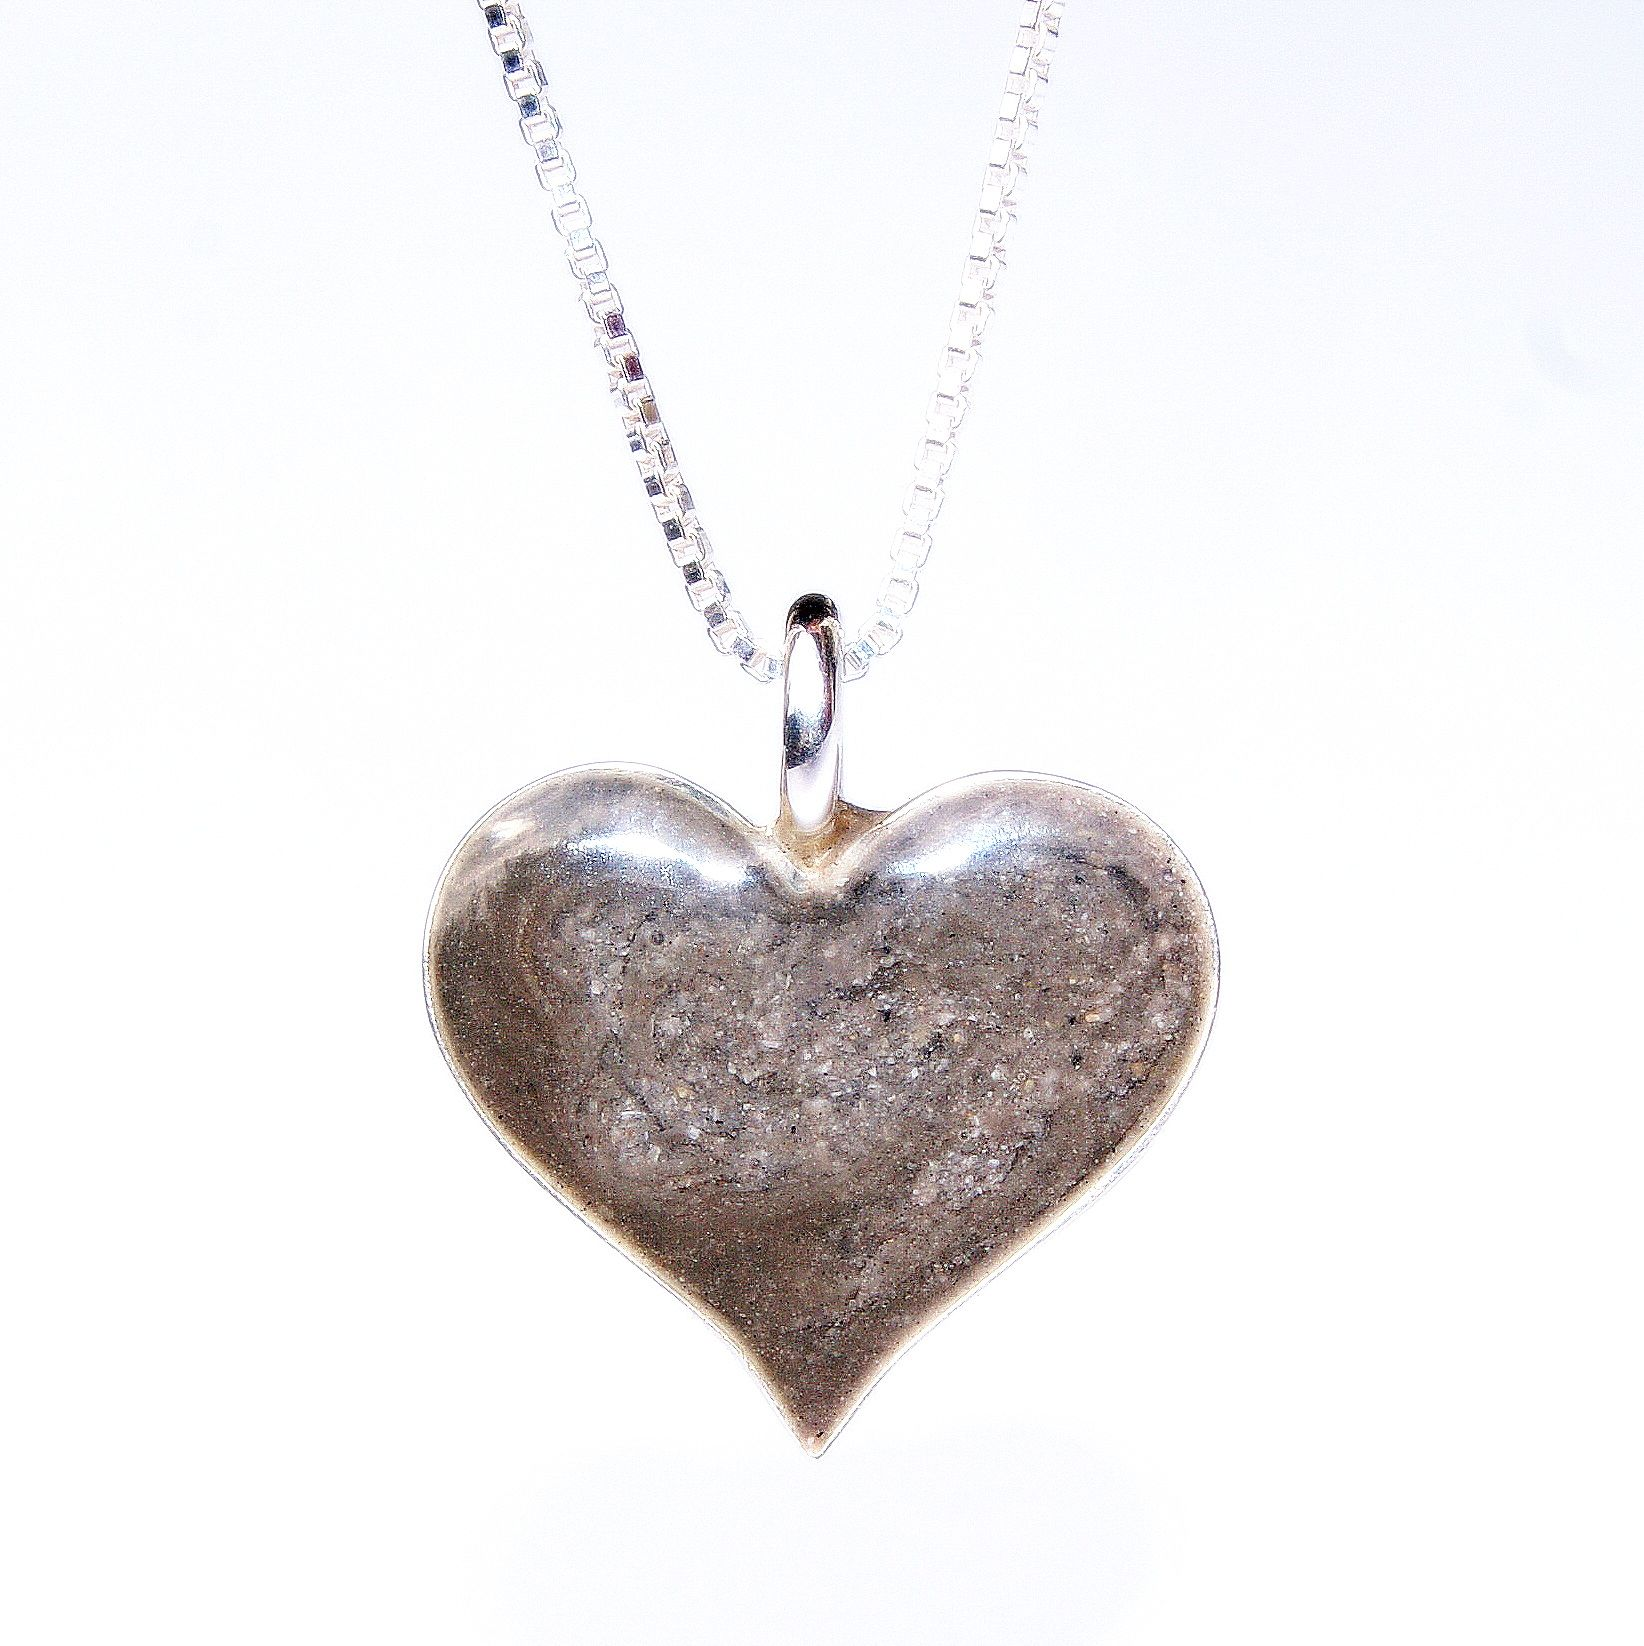 Cremation heart pendant. Sterling silver (.925) this